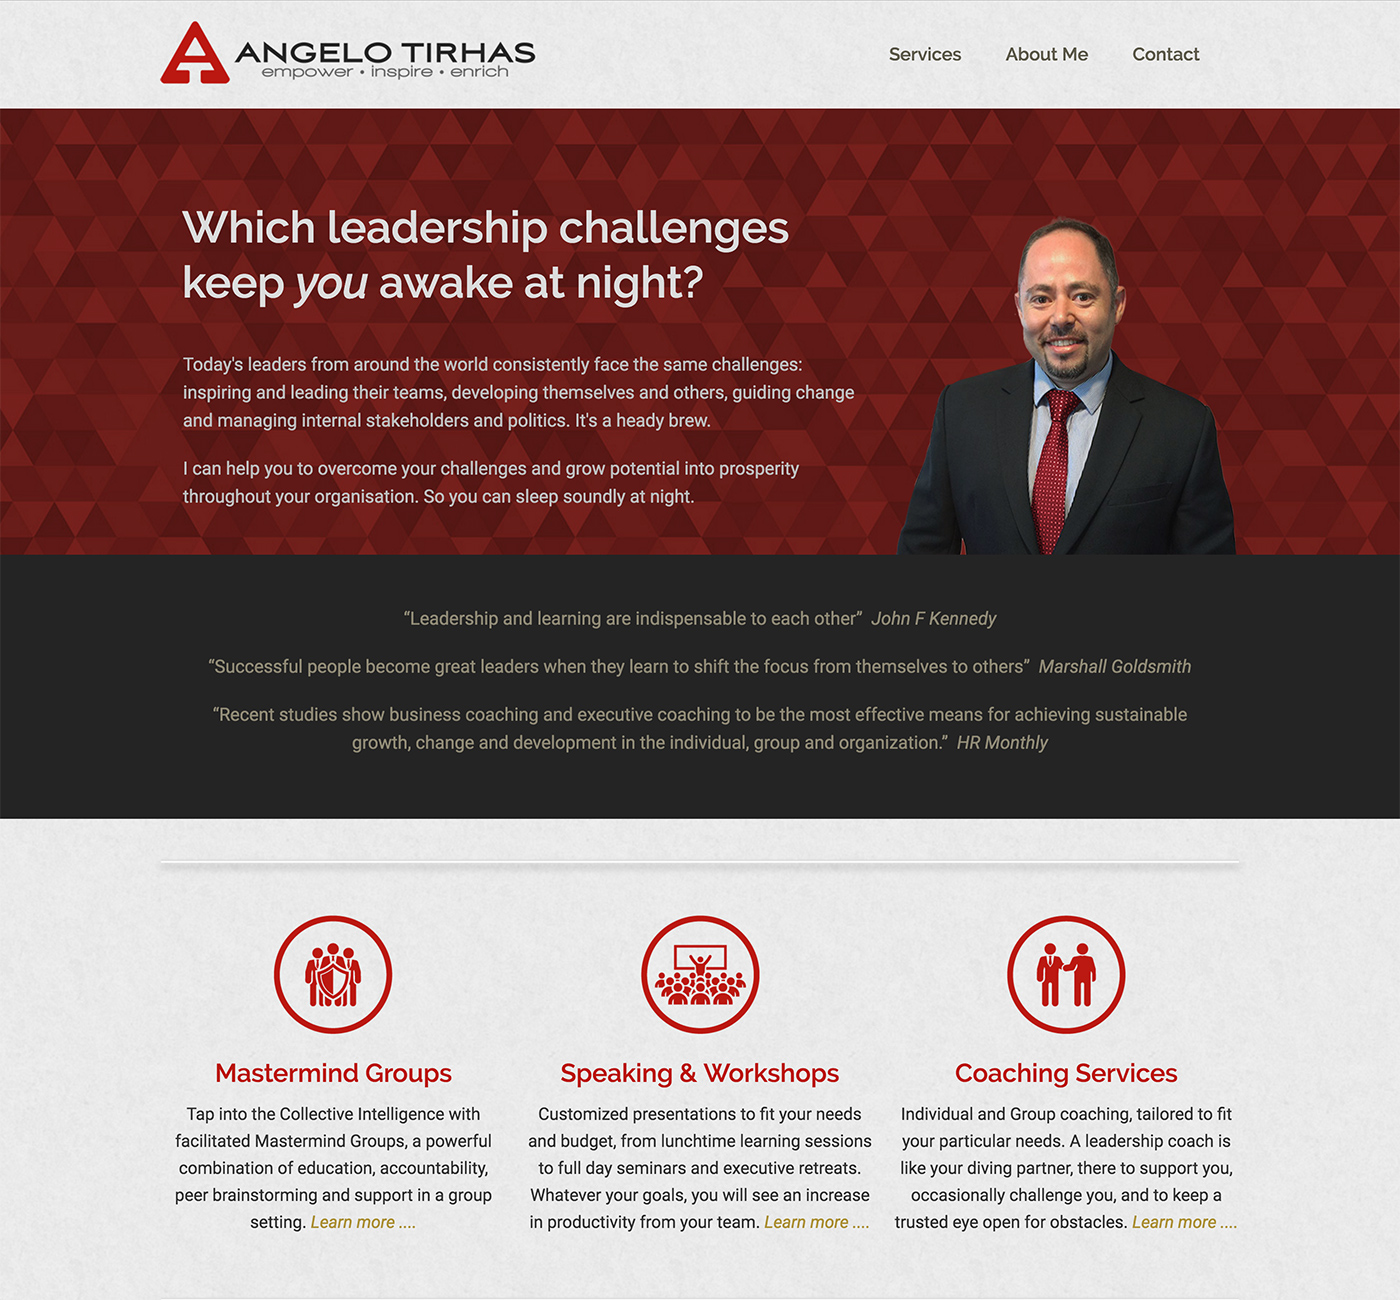 Angelo Tirhas website design